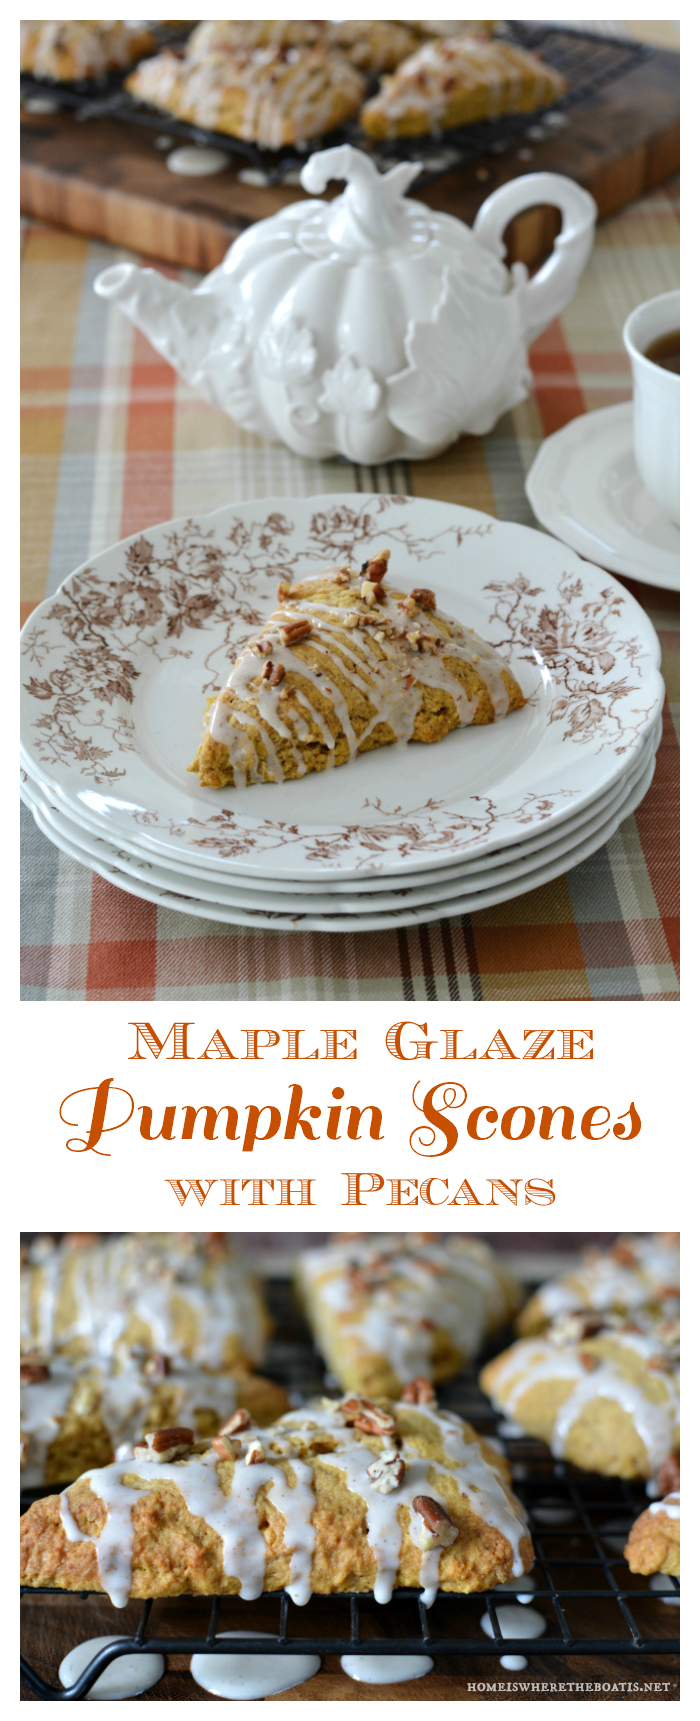 maple-glaze-pumpkin-scones